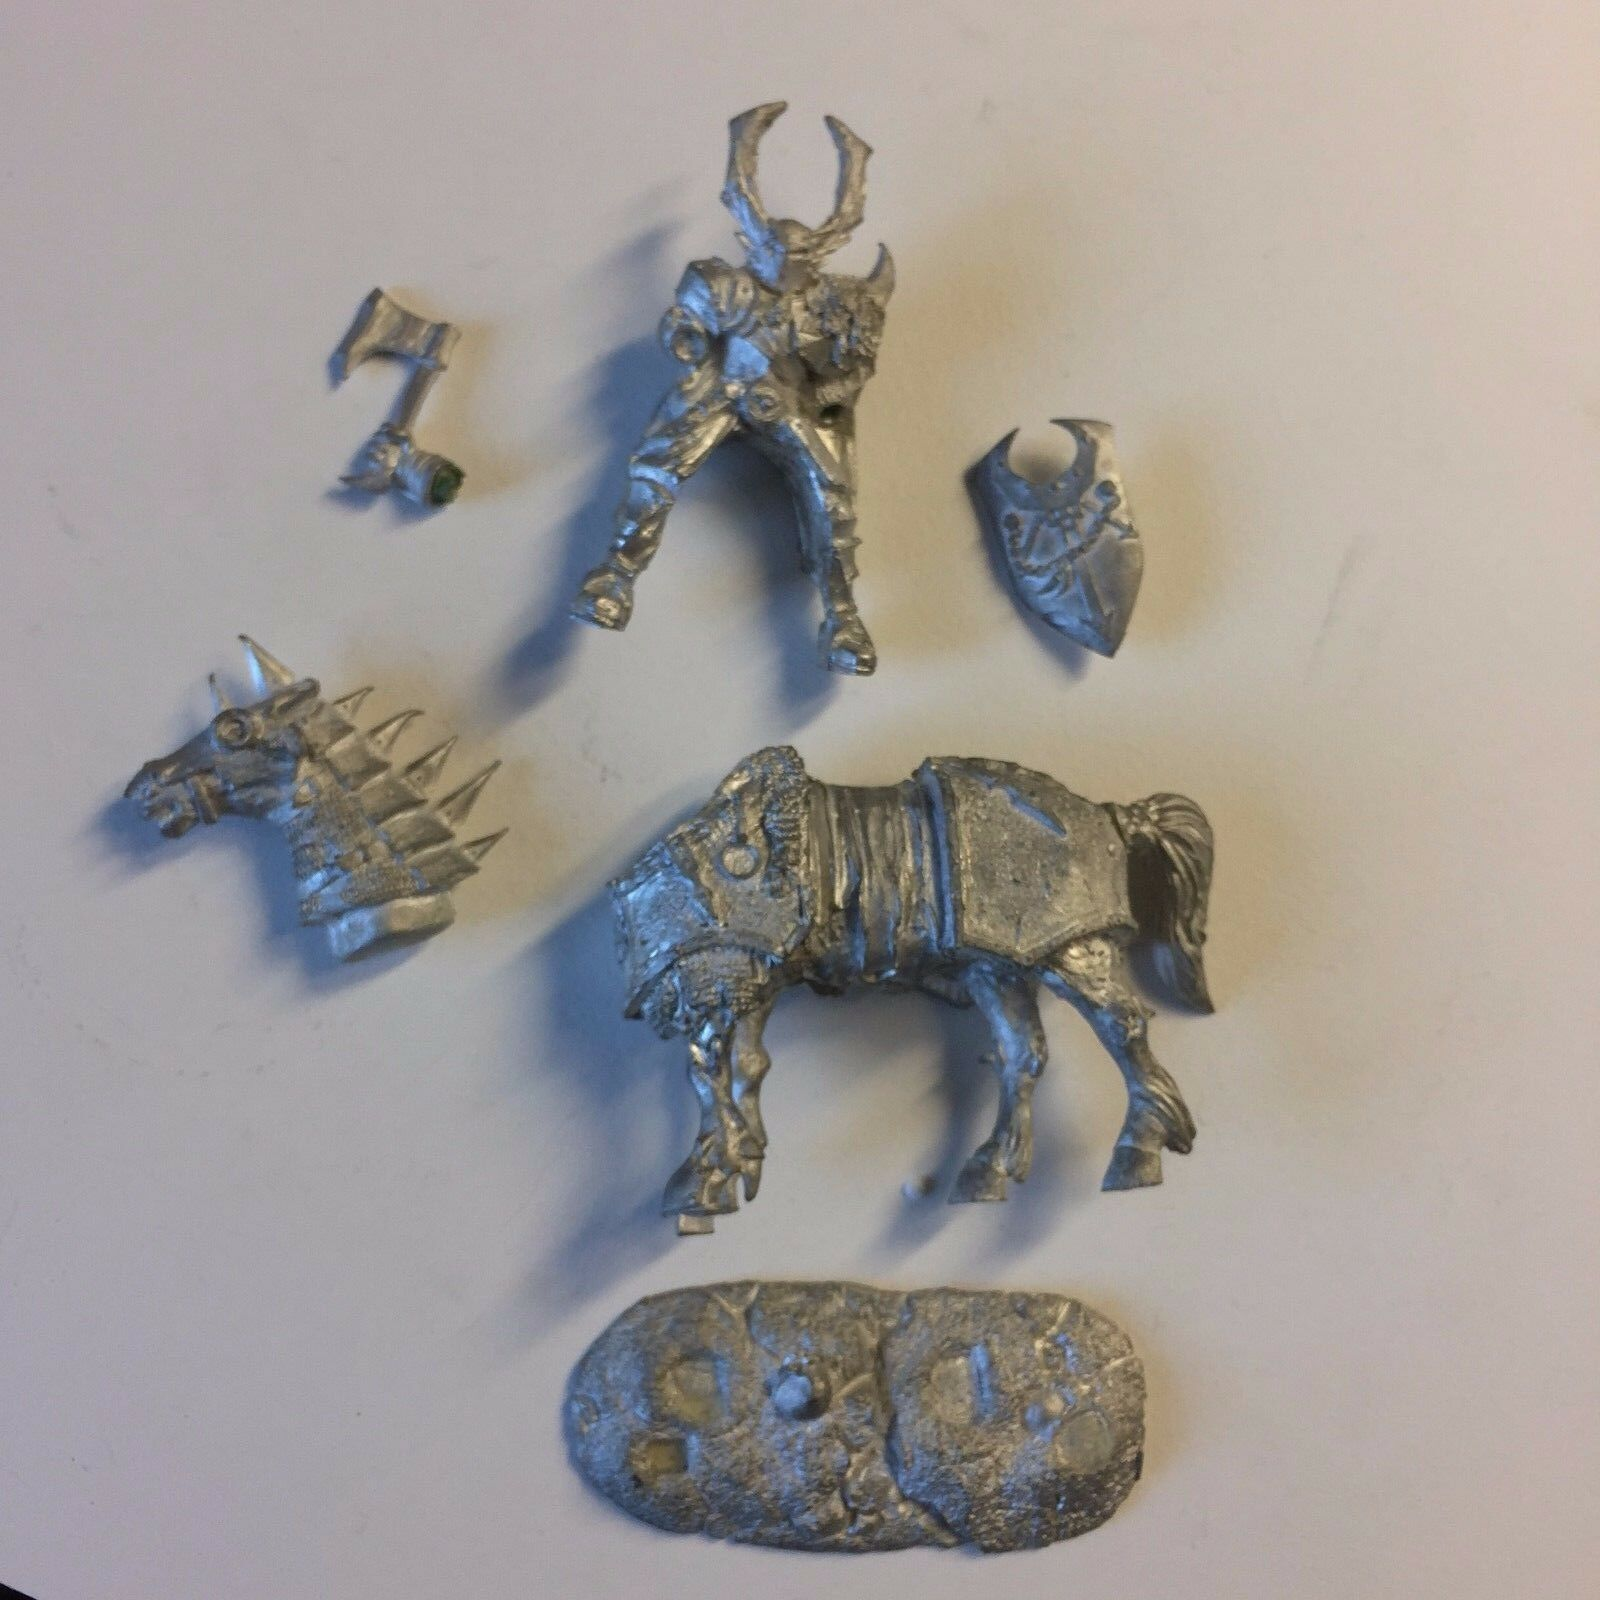 54MM CHAOS WARRIOR MOUNTED XMAS GIFT  SPECIAL ED.CITADEL MINIATURES